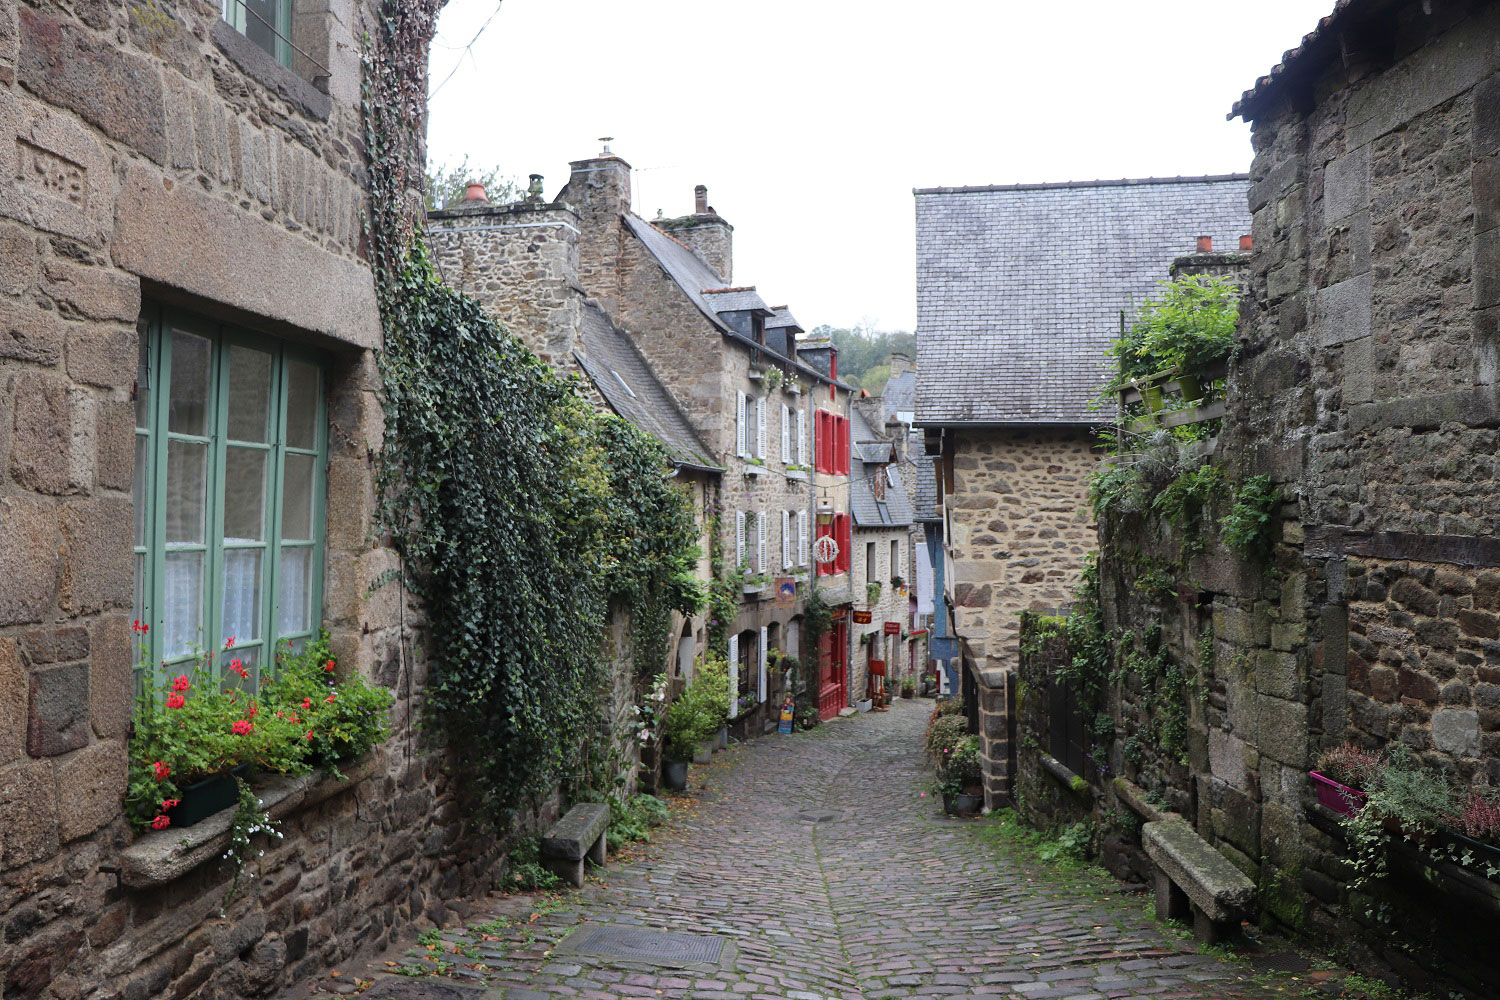 The streets of Dinan